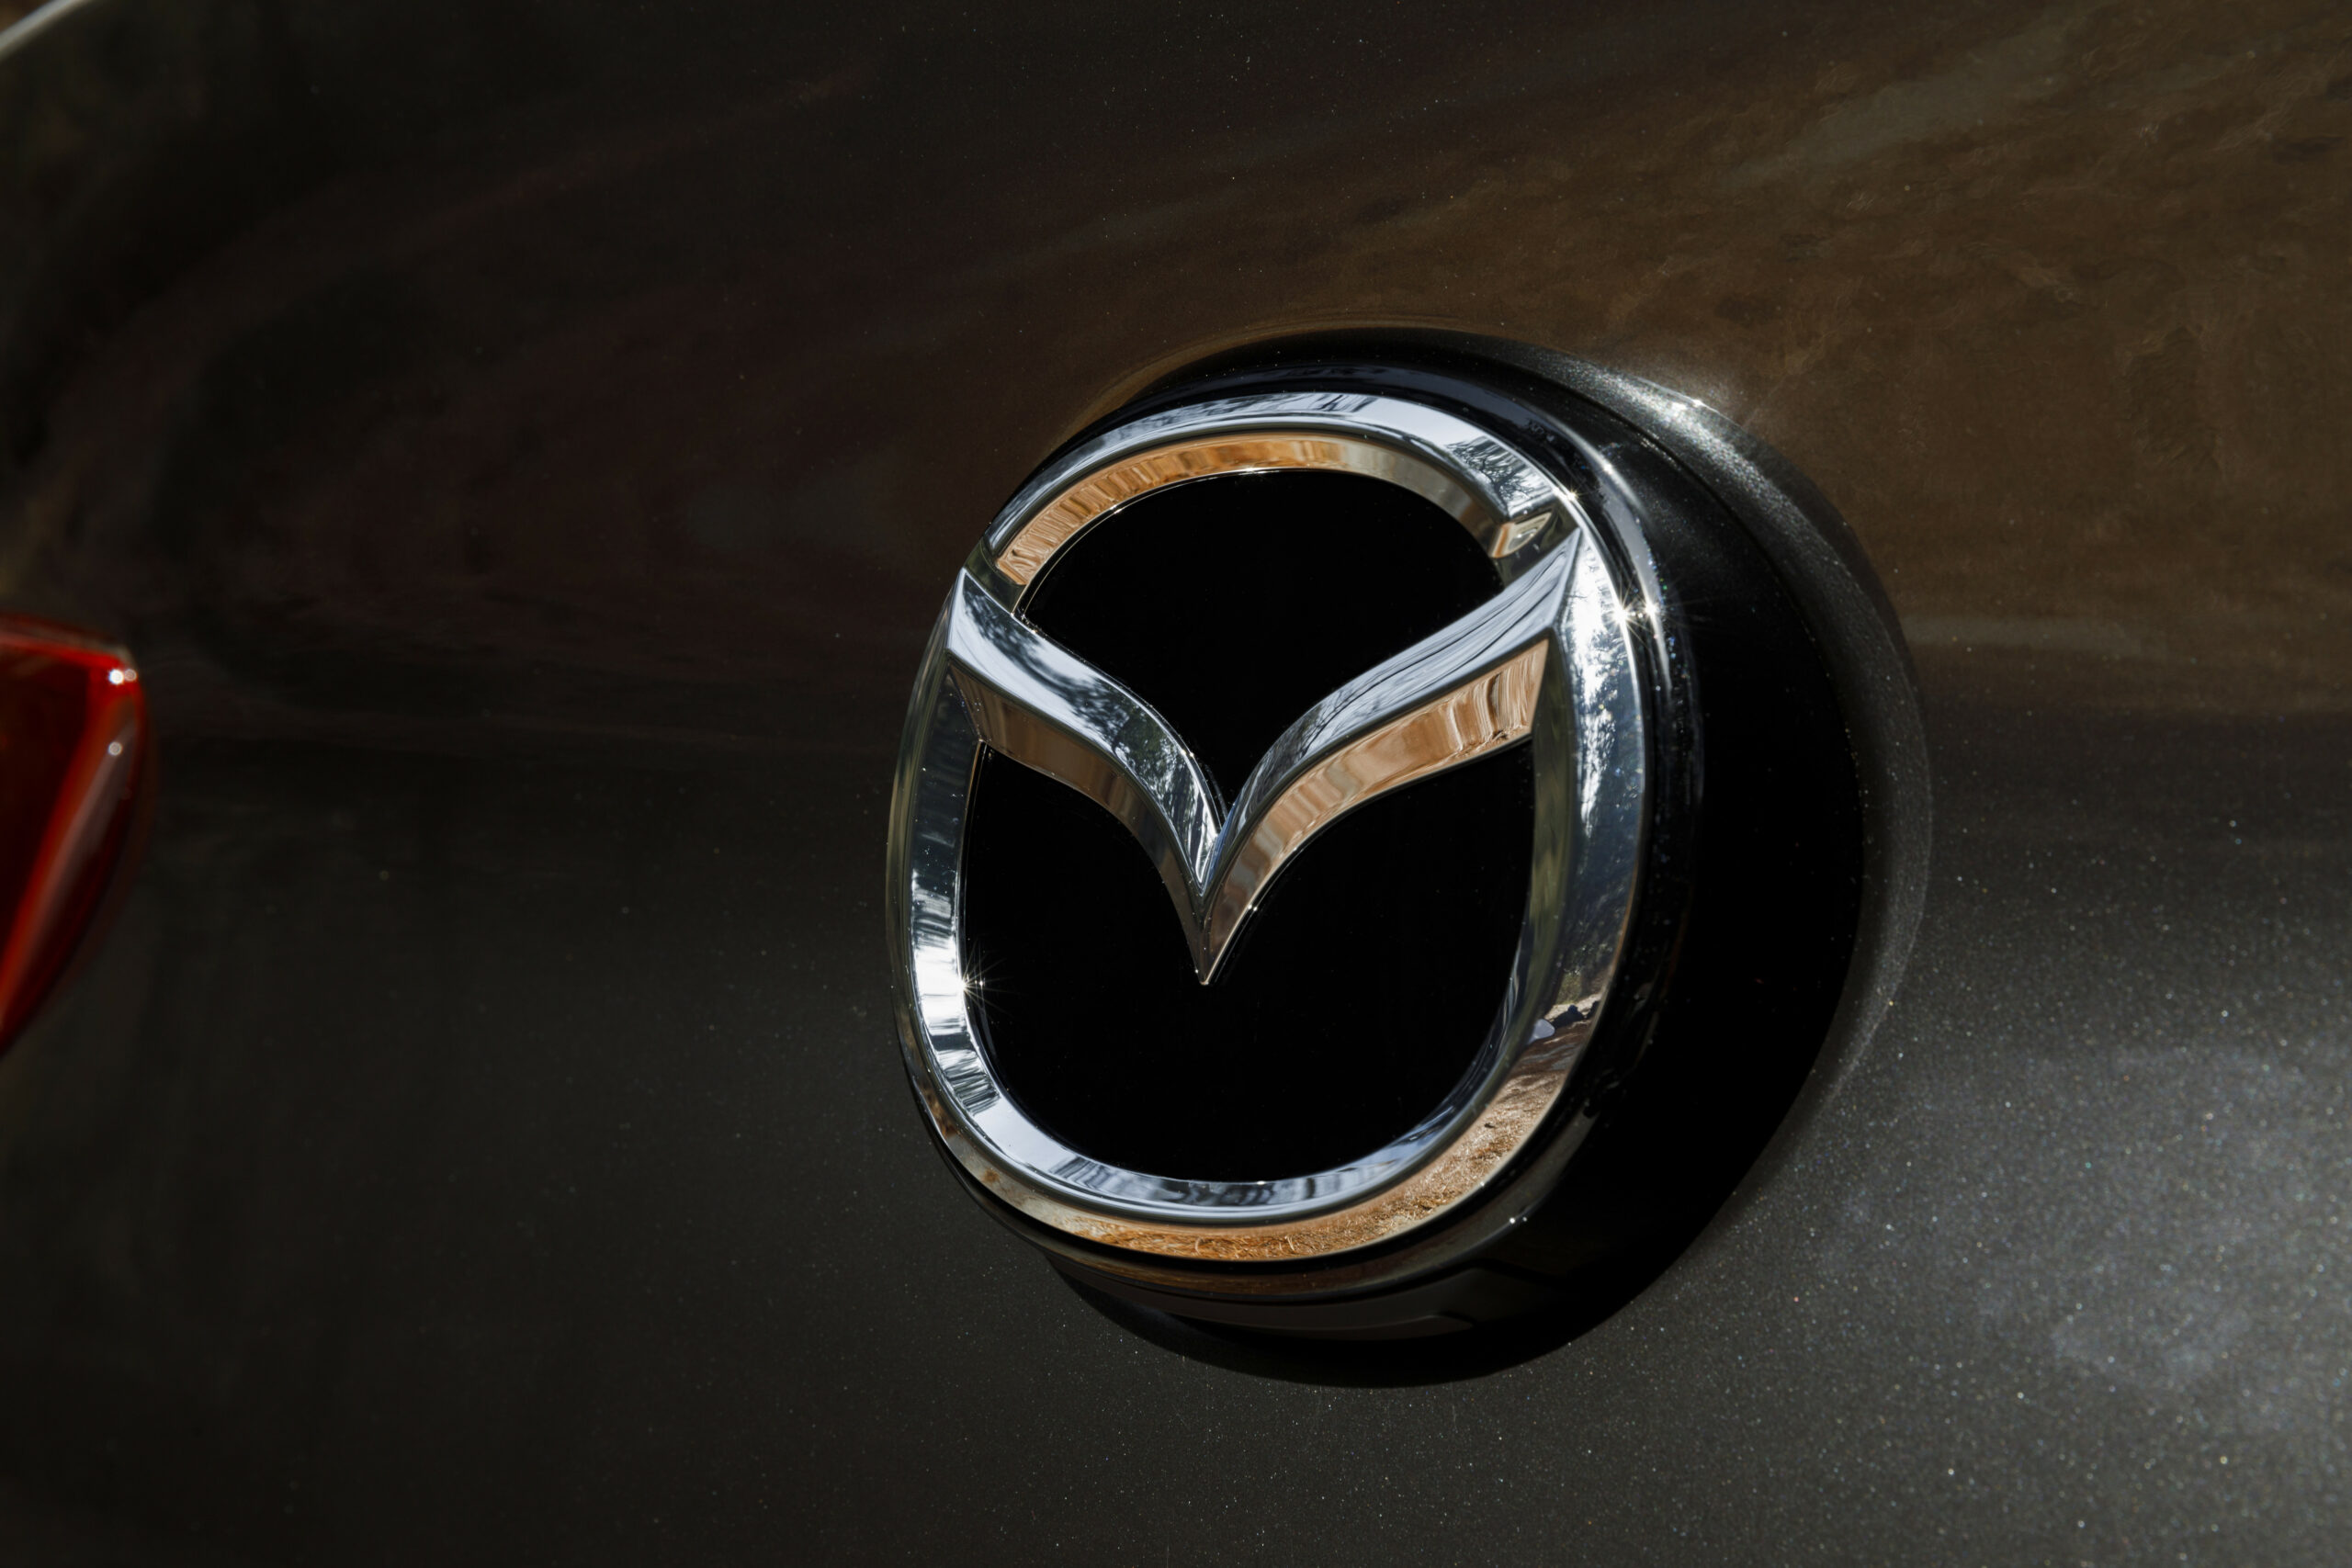 7 Mazda7 Sedan [North America] (BP) '7